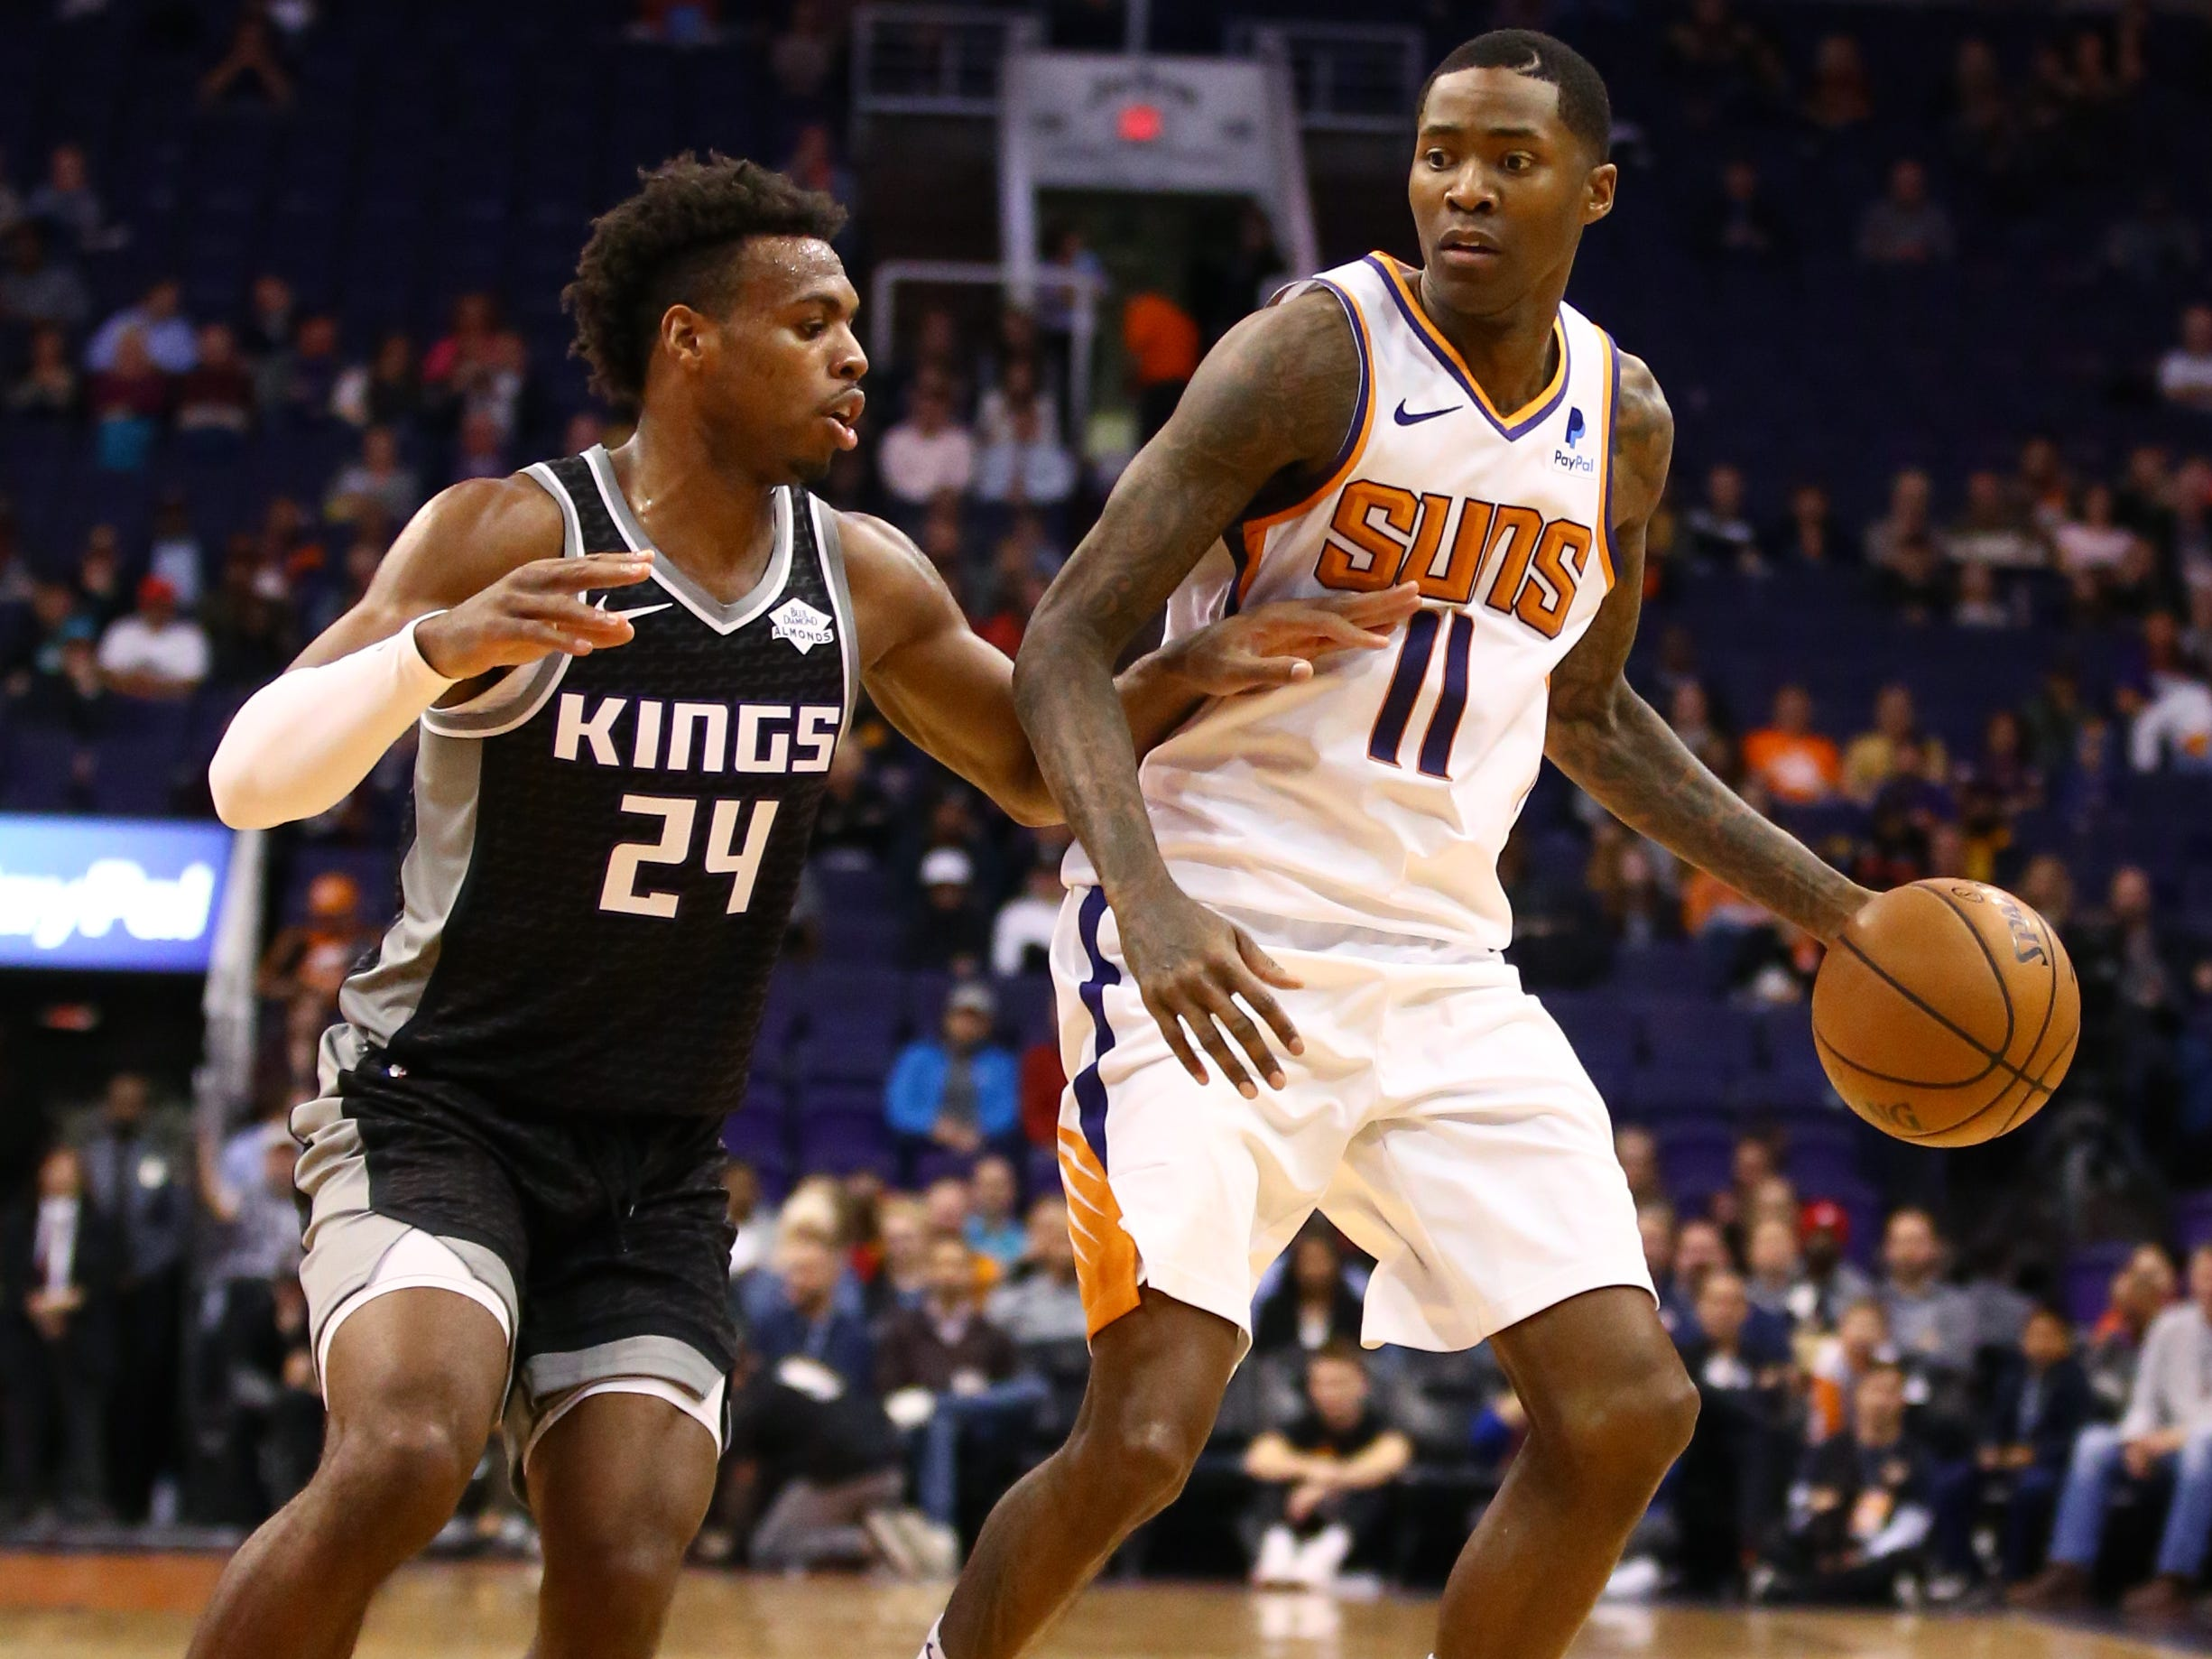 Dec 4, 2018; Phoenix, AZ, USA; Phoenix Suns guard Jamal Crawford (11) controls the ball against Sacramento Kings guard Buddy Hield (24) in the first half at Talking Stick Resort Arena. Mandatory Credit: Mark J. Rebilas-USA TODAY Sports